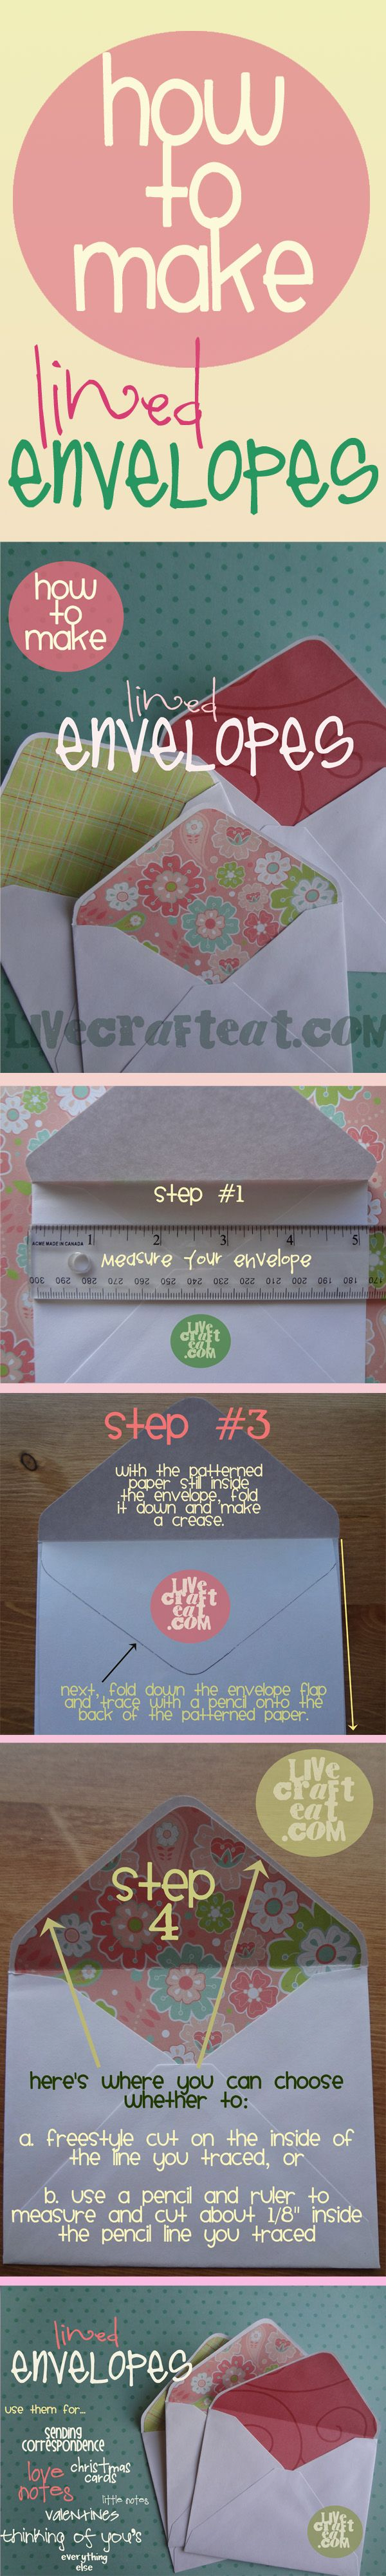 how to make lined envelopes - the easy way! tutorial   www.livecrafteat.com